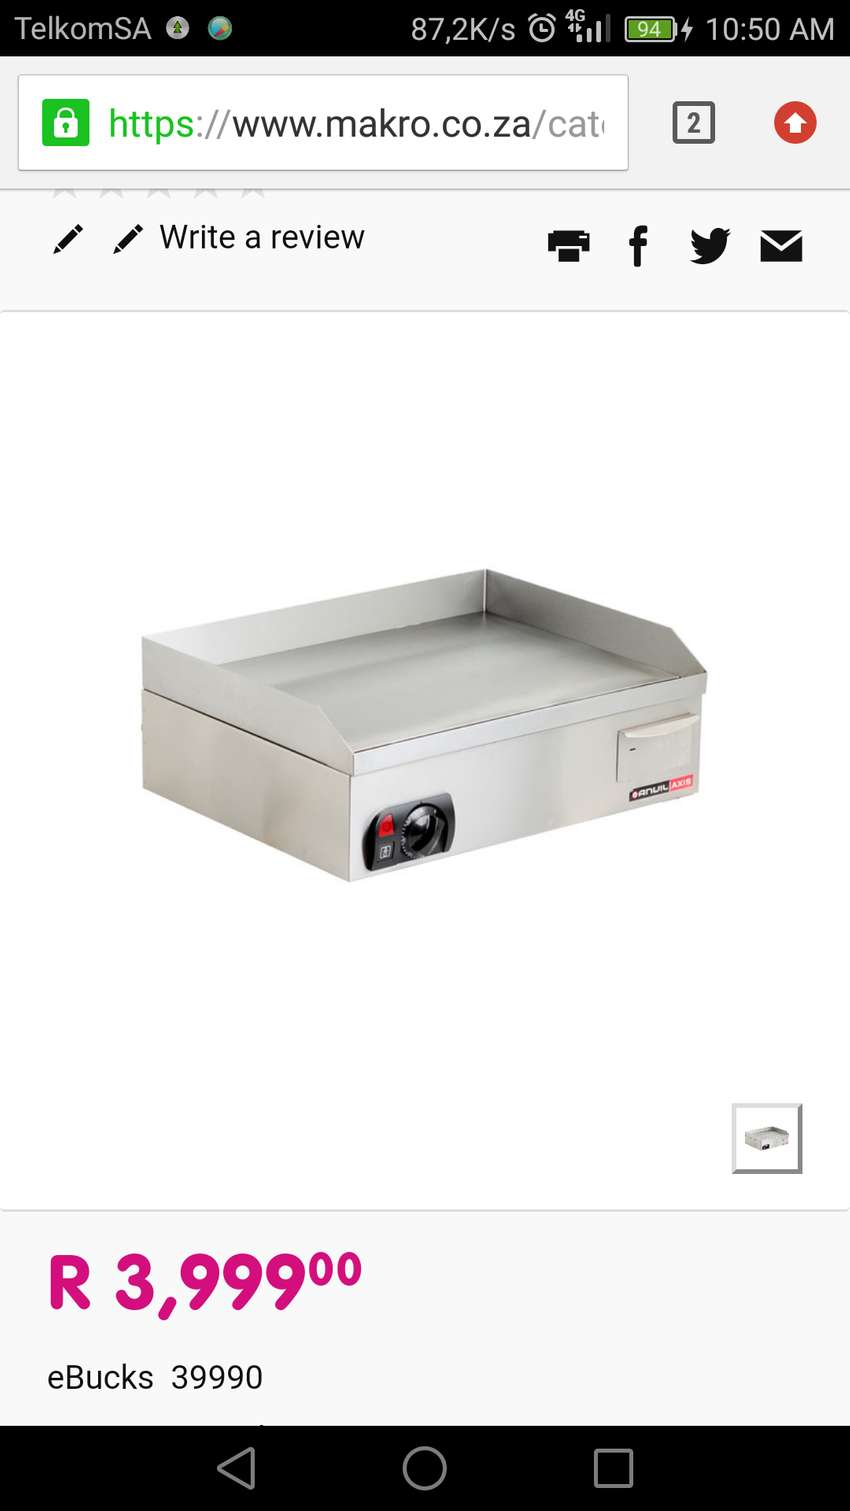 BARGAIN ANVIL GRILLER AND TWO PLATE STOVE 0